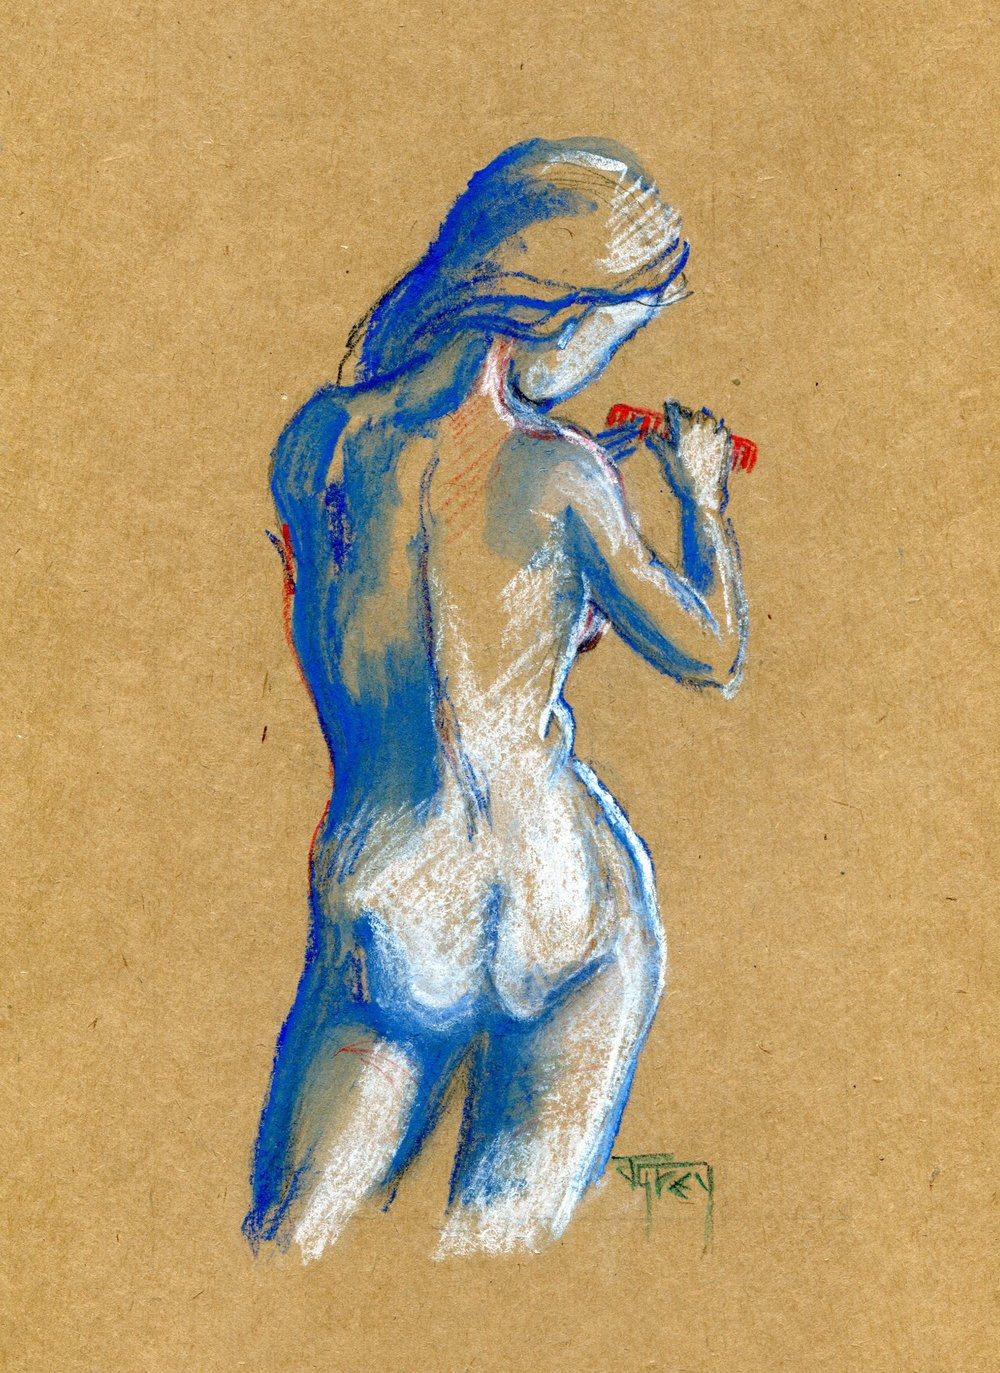 2B JULIET GREY, BLUE NUDE WITH RED COMB, CRAYON ON PAPER